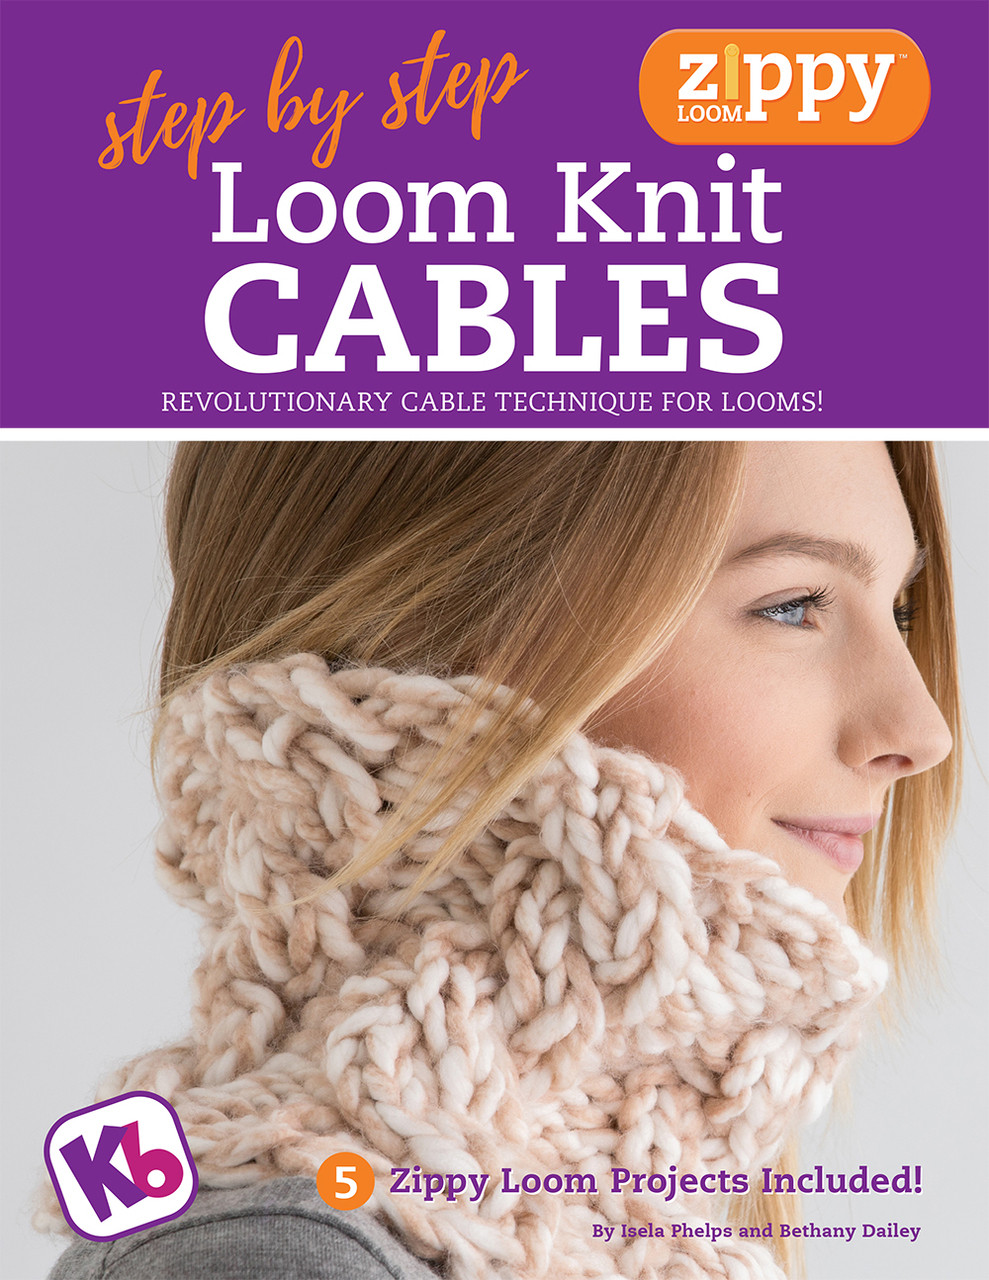 5cbad2aadc0d45 Loom Knit Cables eBook - http   www.knittingboard.com